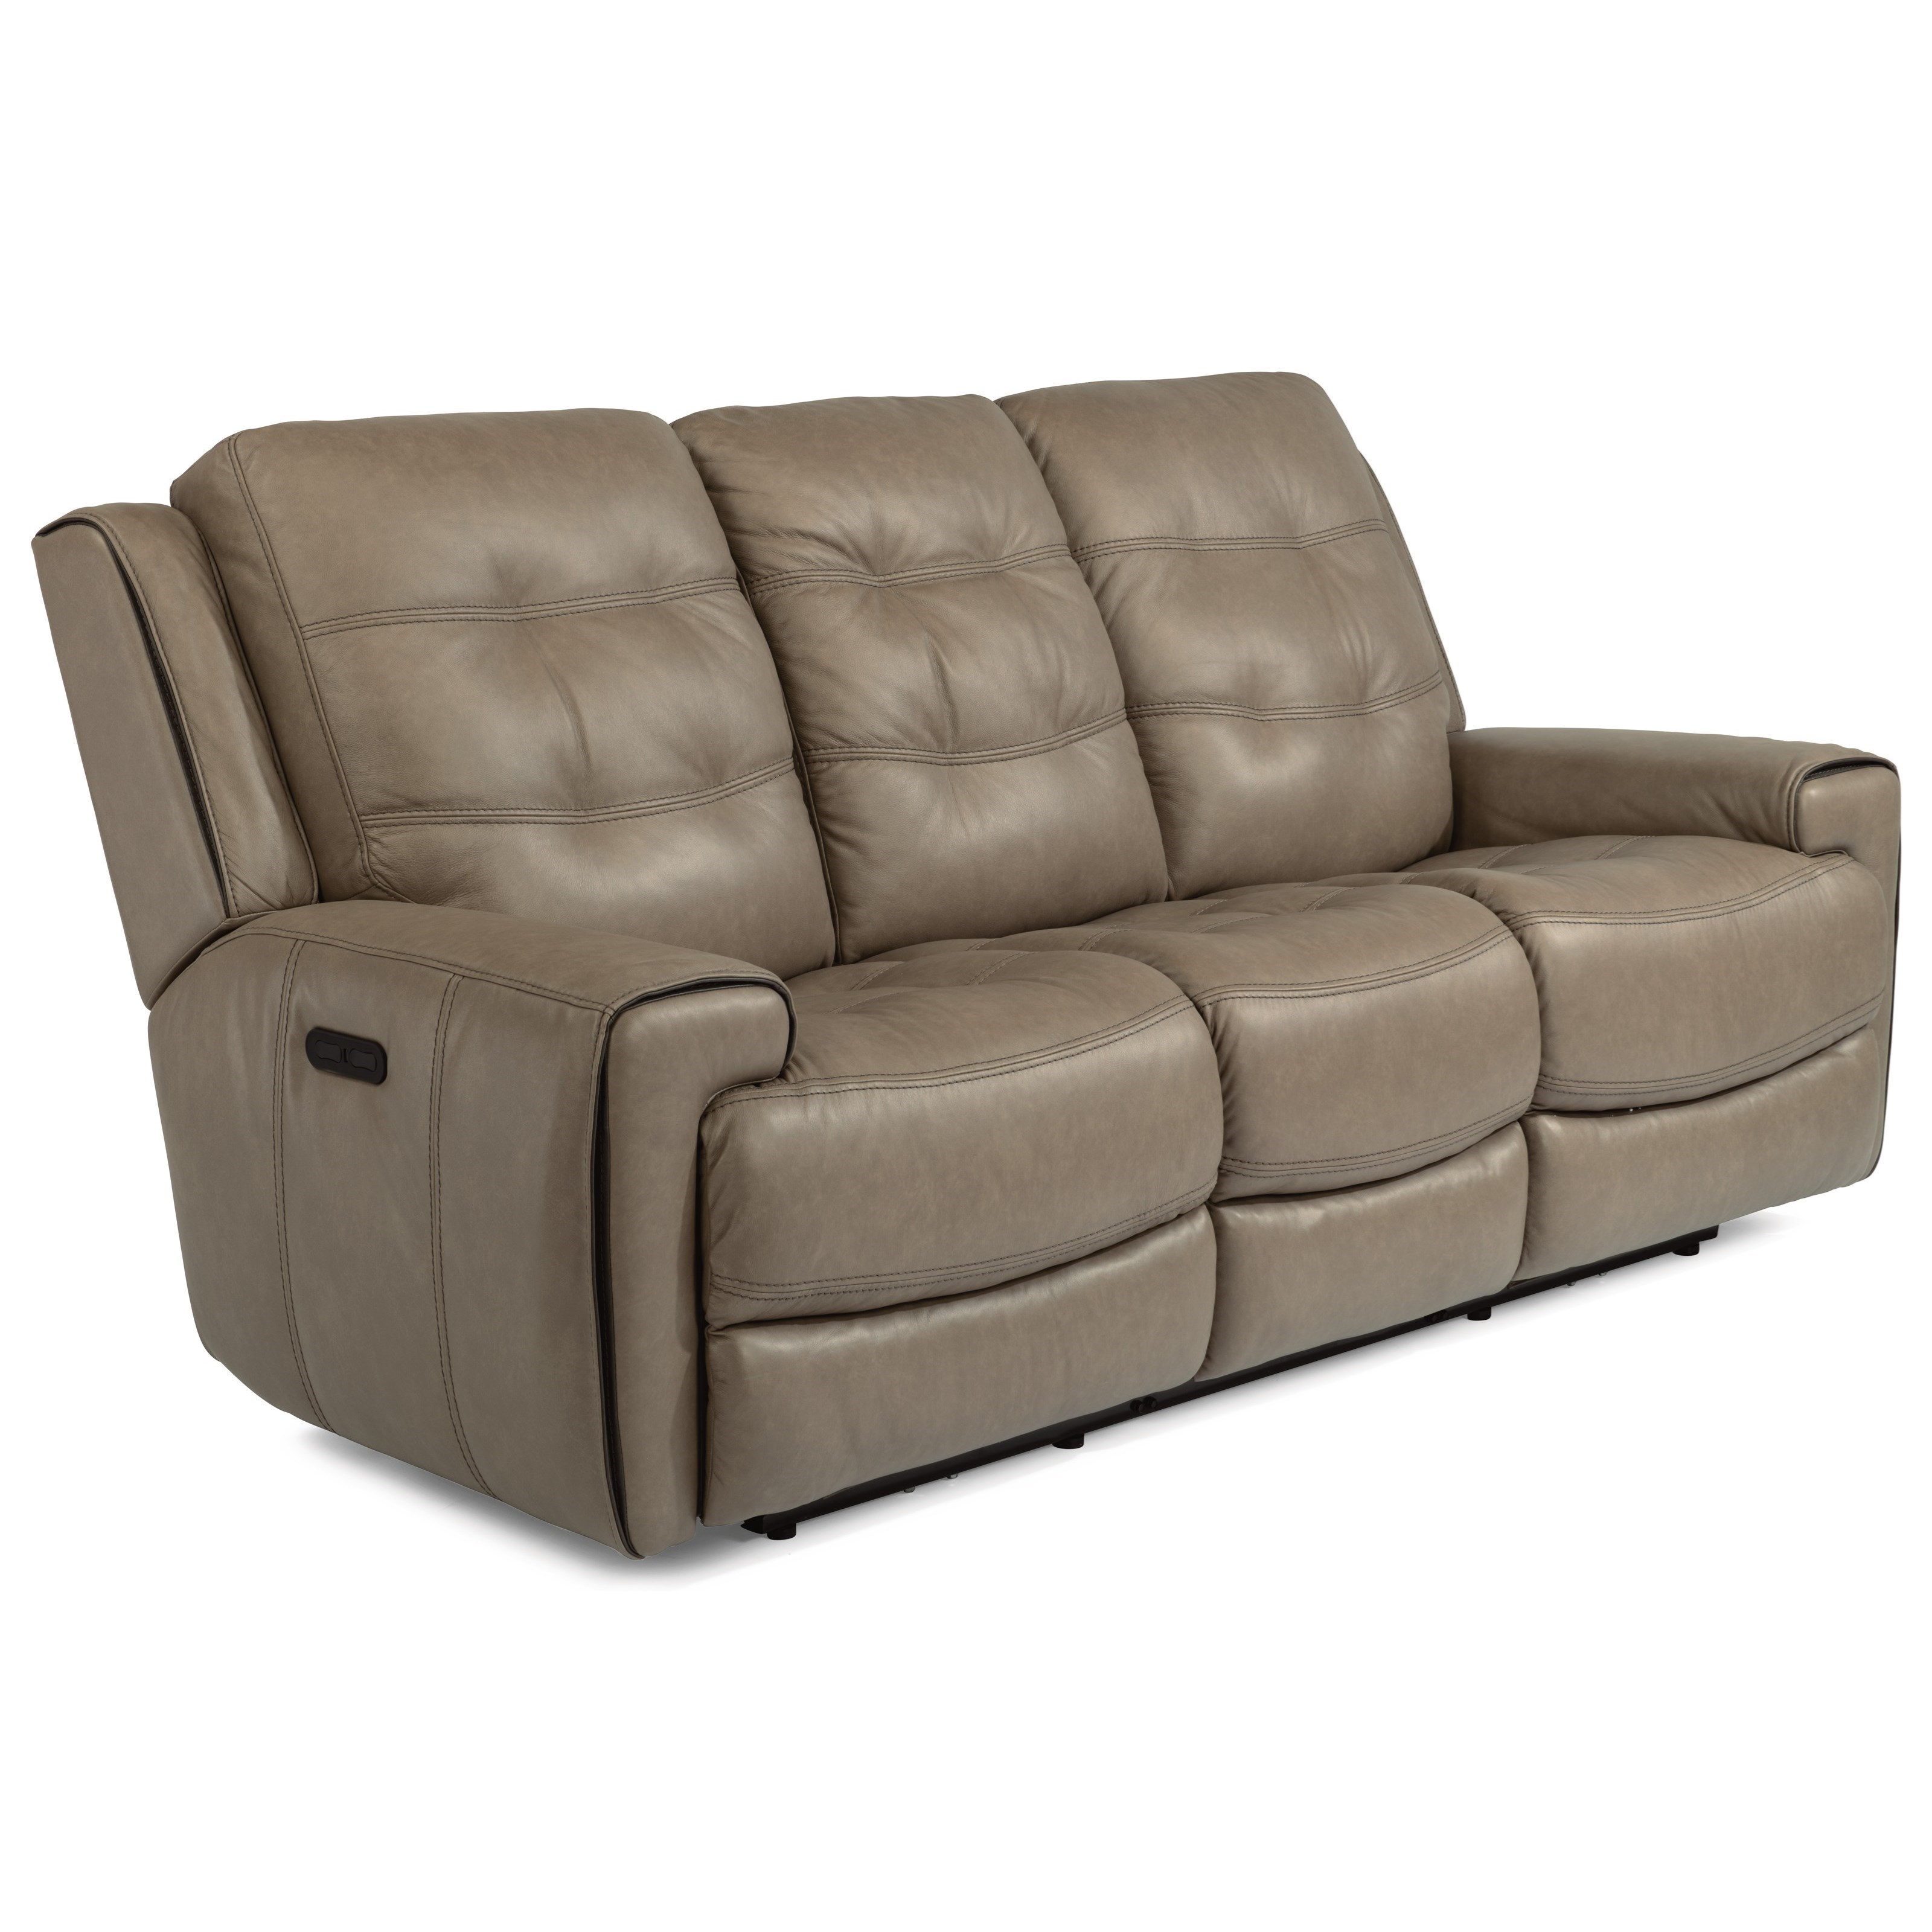 Flexsteel Latitudes WicklowPower Reclining Sofa With Power Headrest